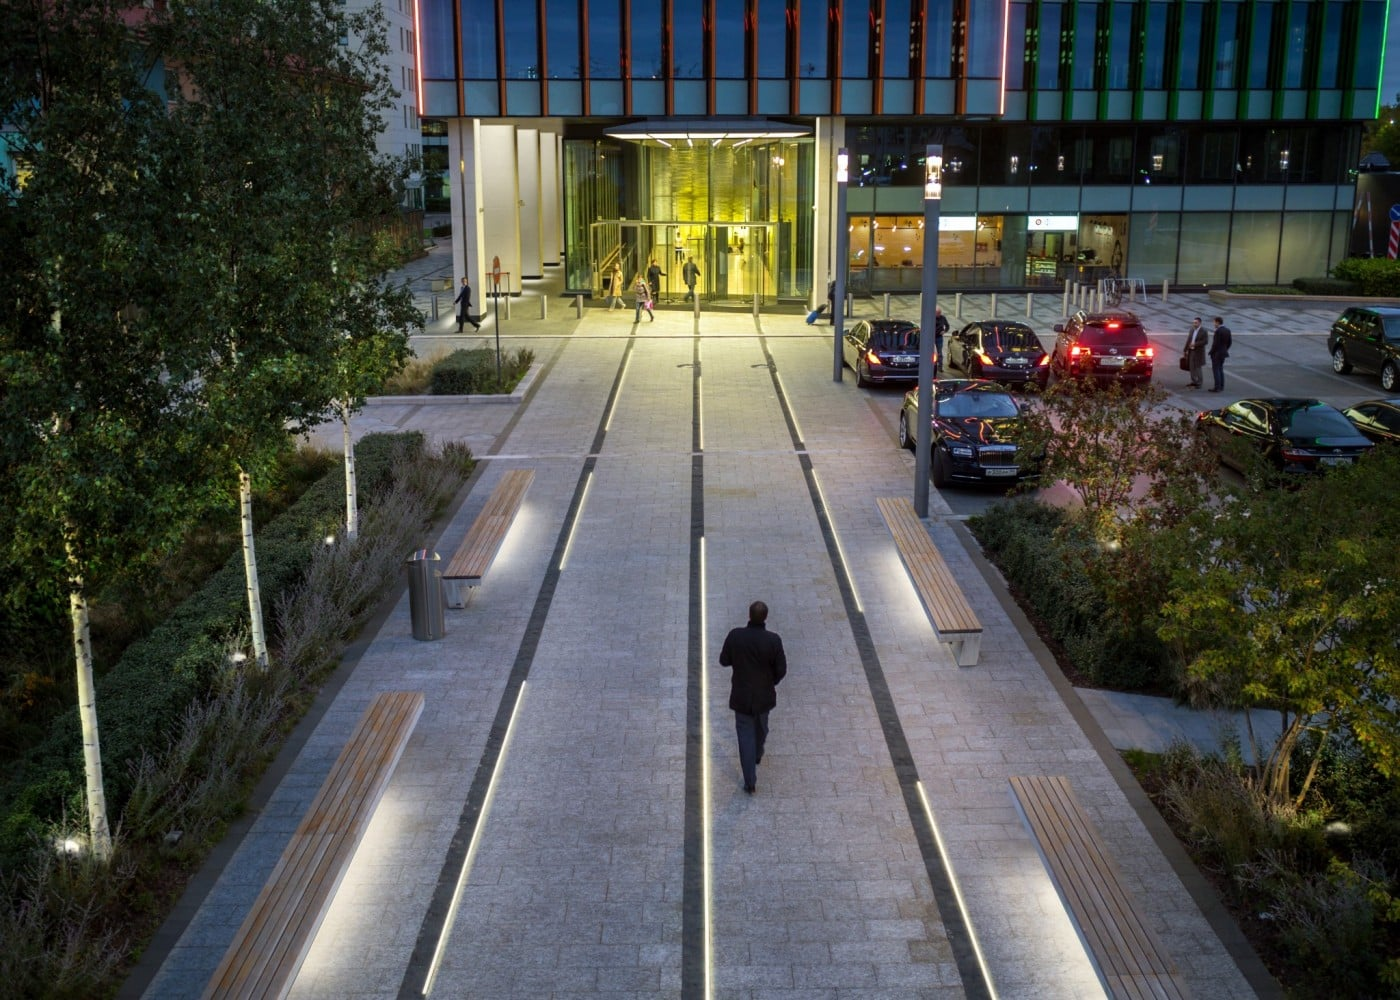 commercial lighting design: exterior walkway leading to building